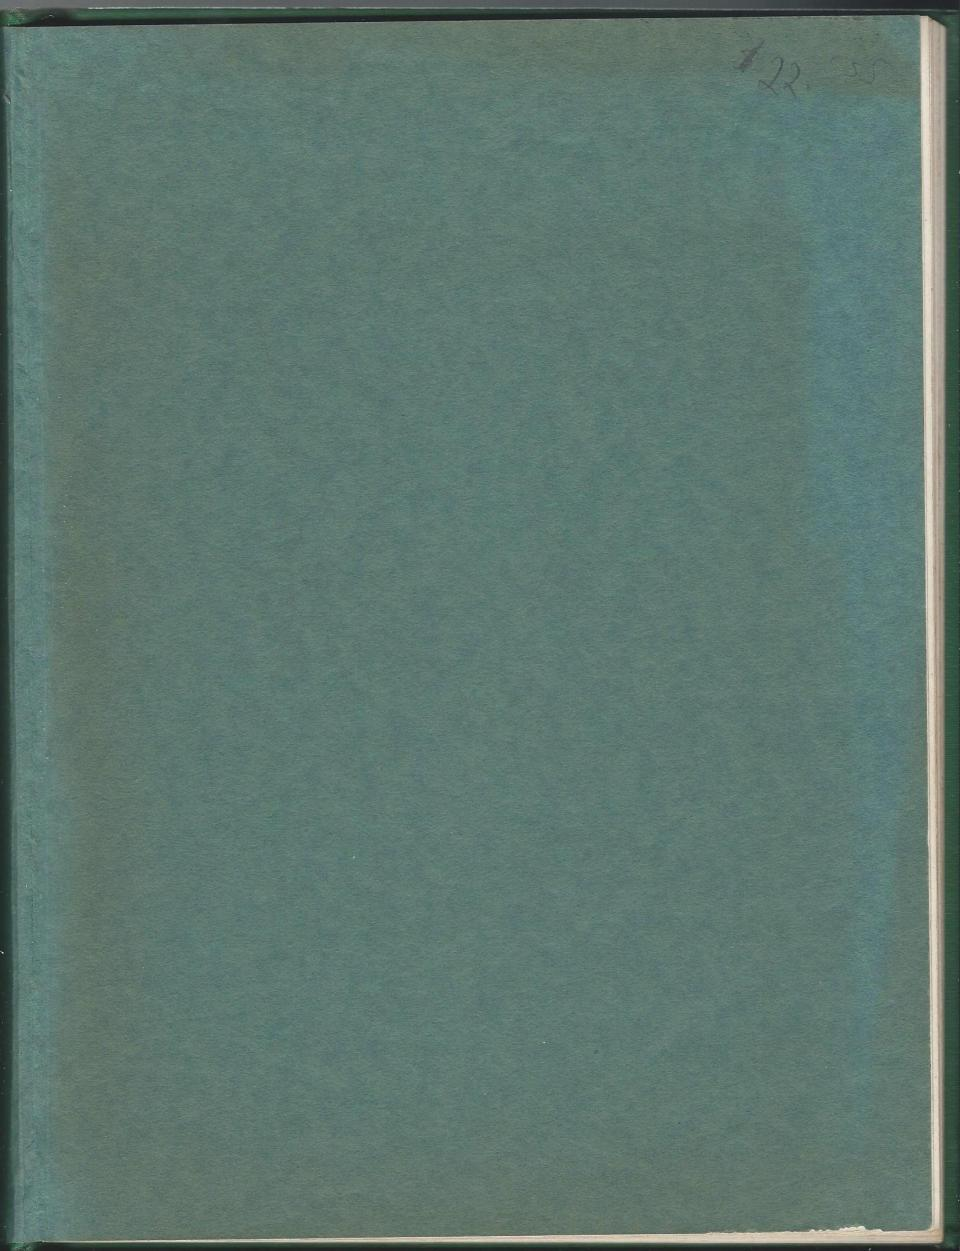 1938 HS Yearbook cover 02